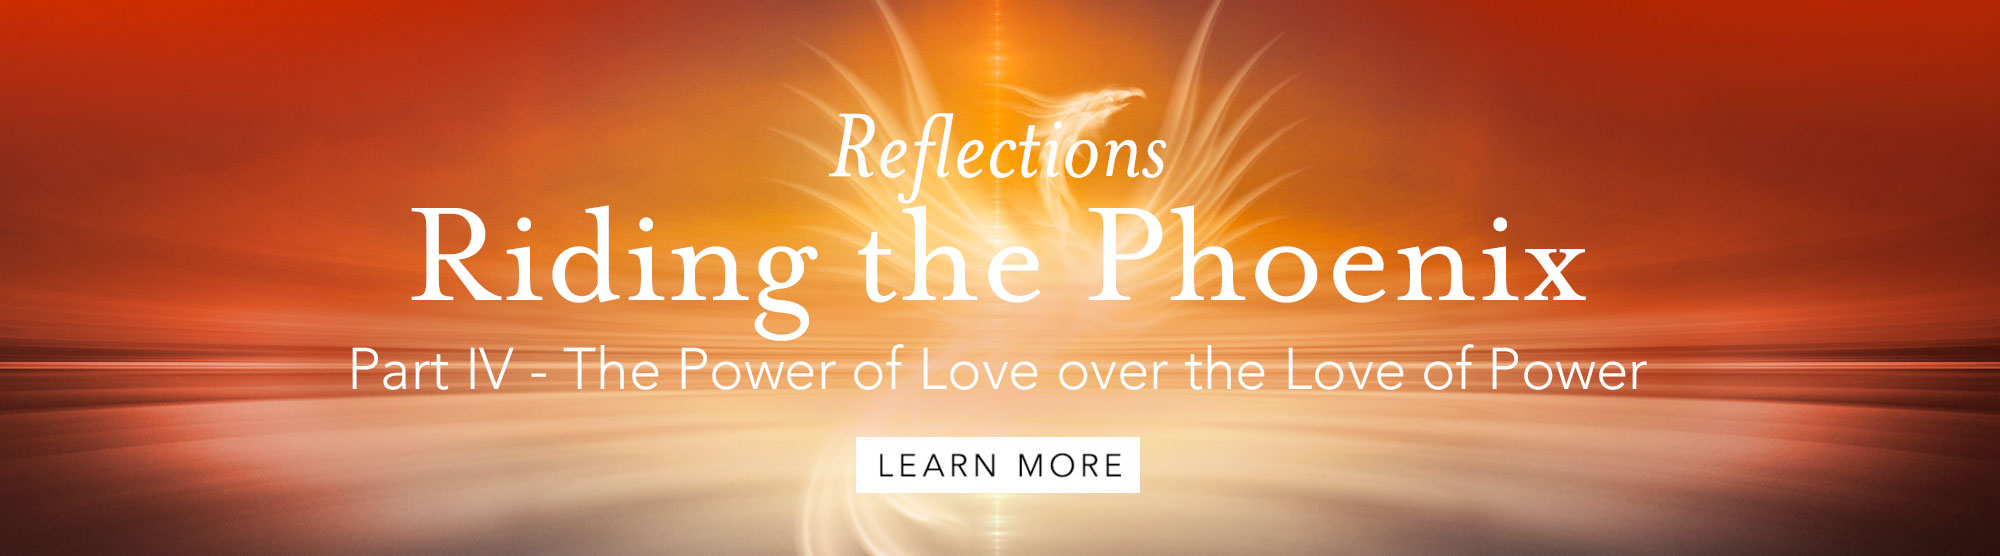 Riding the Phoenix Part IV: The Power of Love over the Love of Power